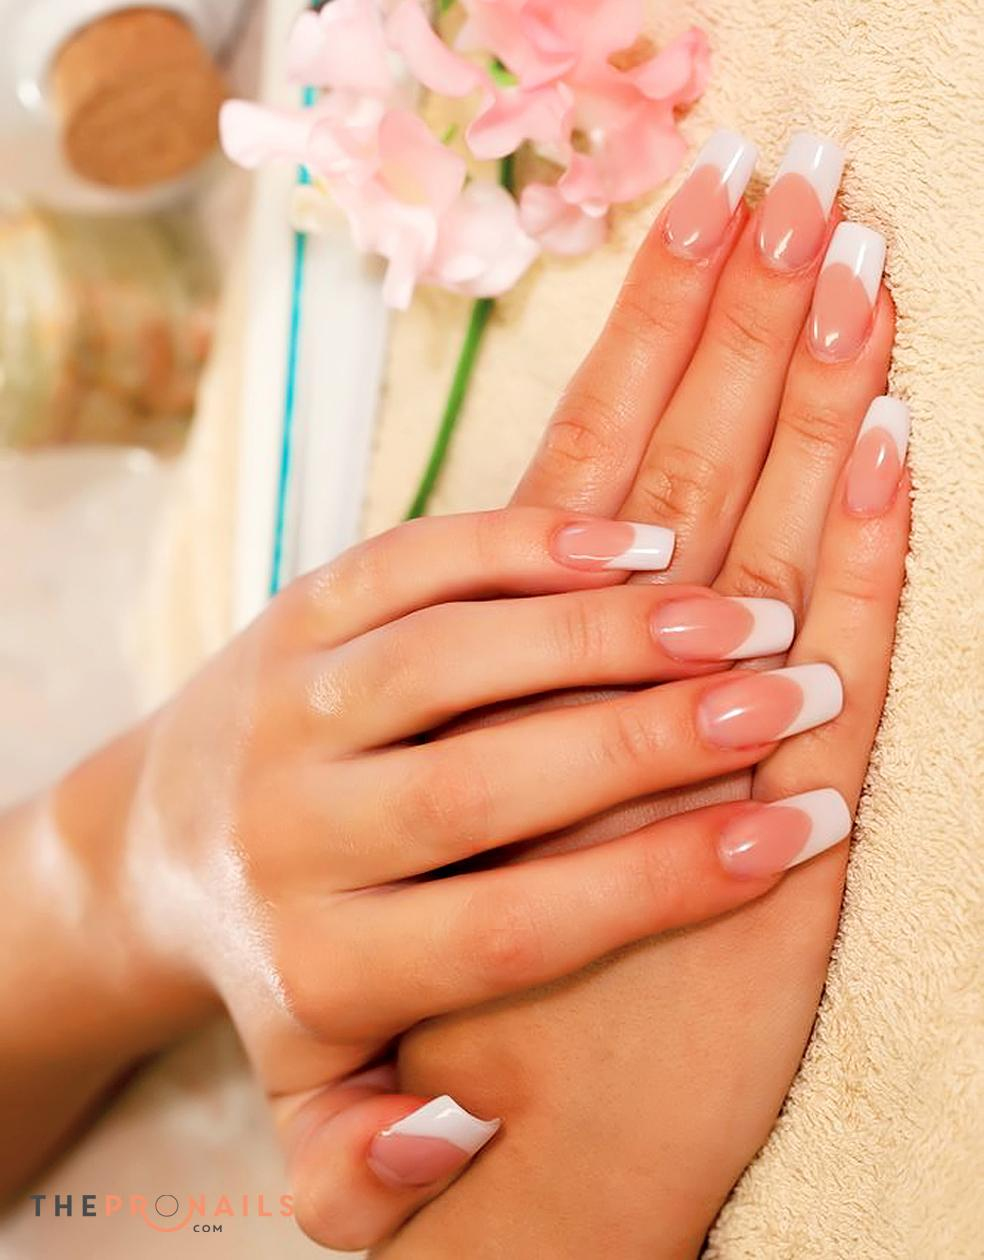 VRS Nails & Spa | Acrylic with White Tips Fill In